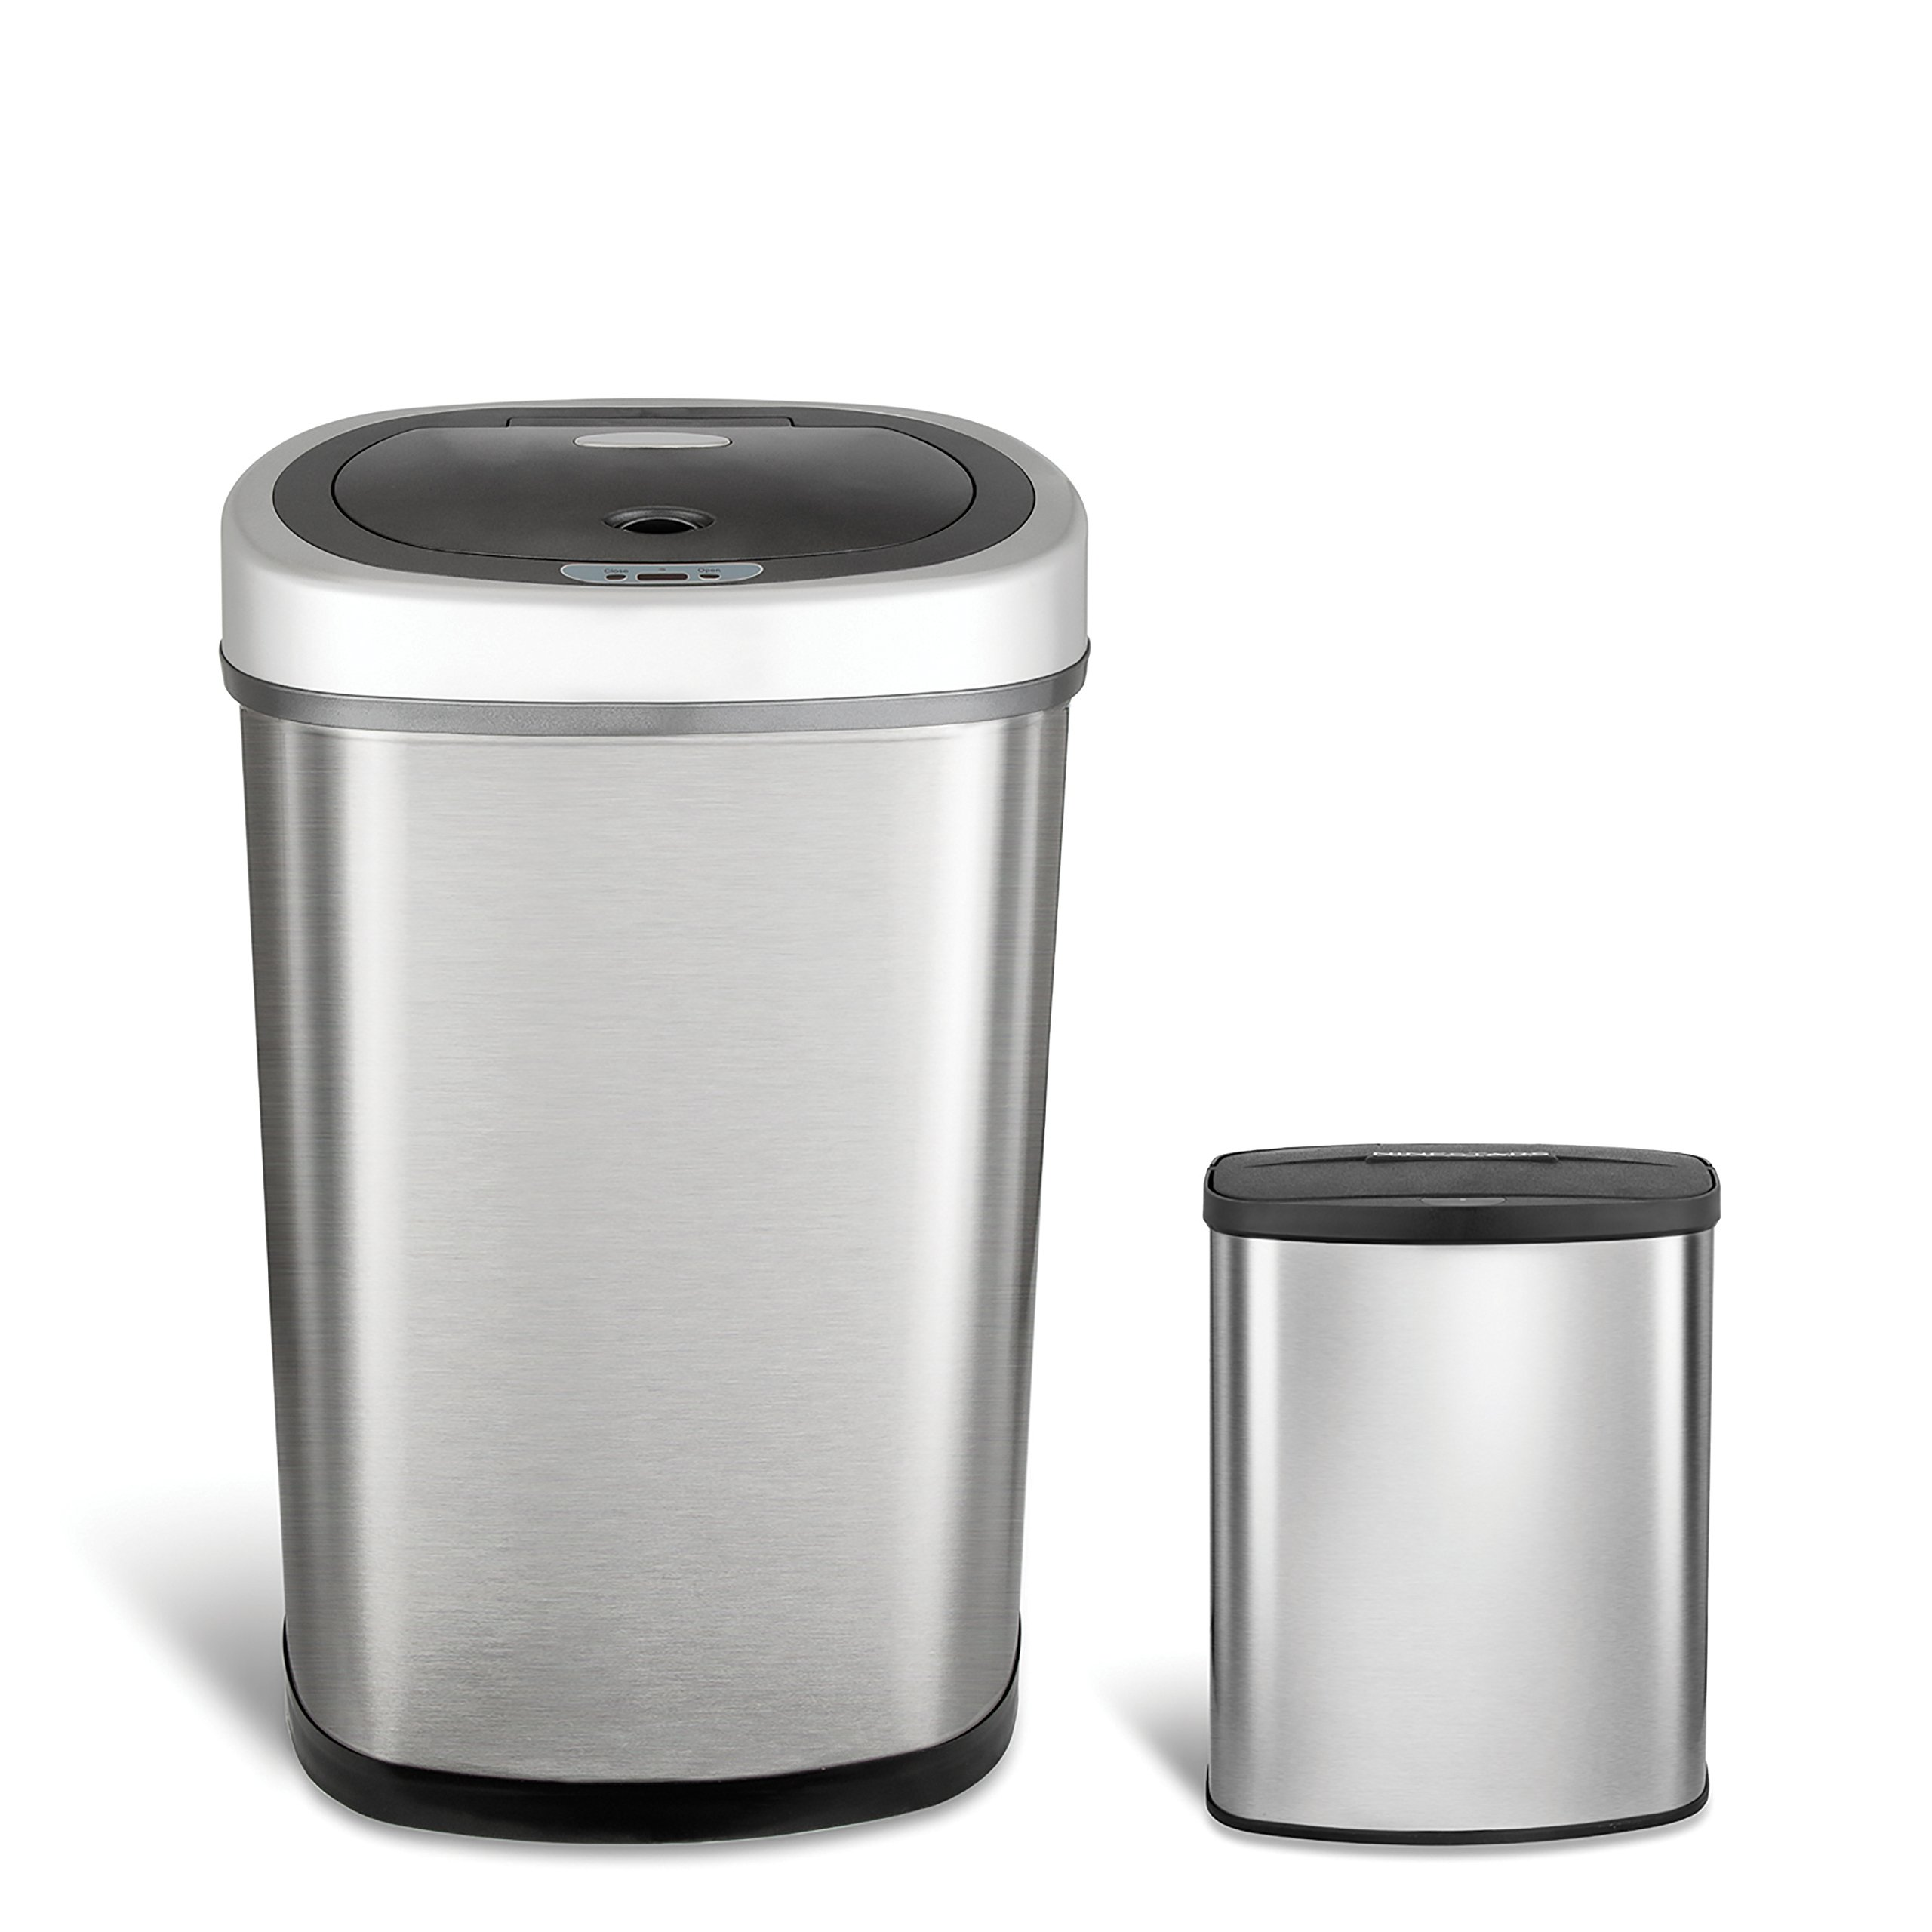 Ninestars CB-DZT-50-98-1C Automatic Touchless Motion Sensor Oval & Rectangular Trash Can Combo Set, 13.2 Gal. 50 L. & 2.1 Gal.8 L, Stainless Steel